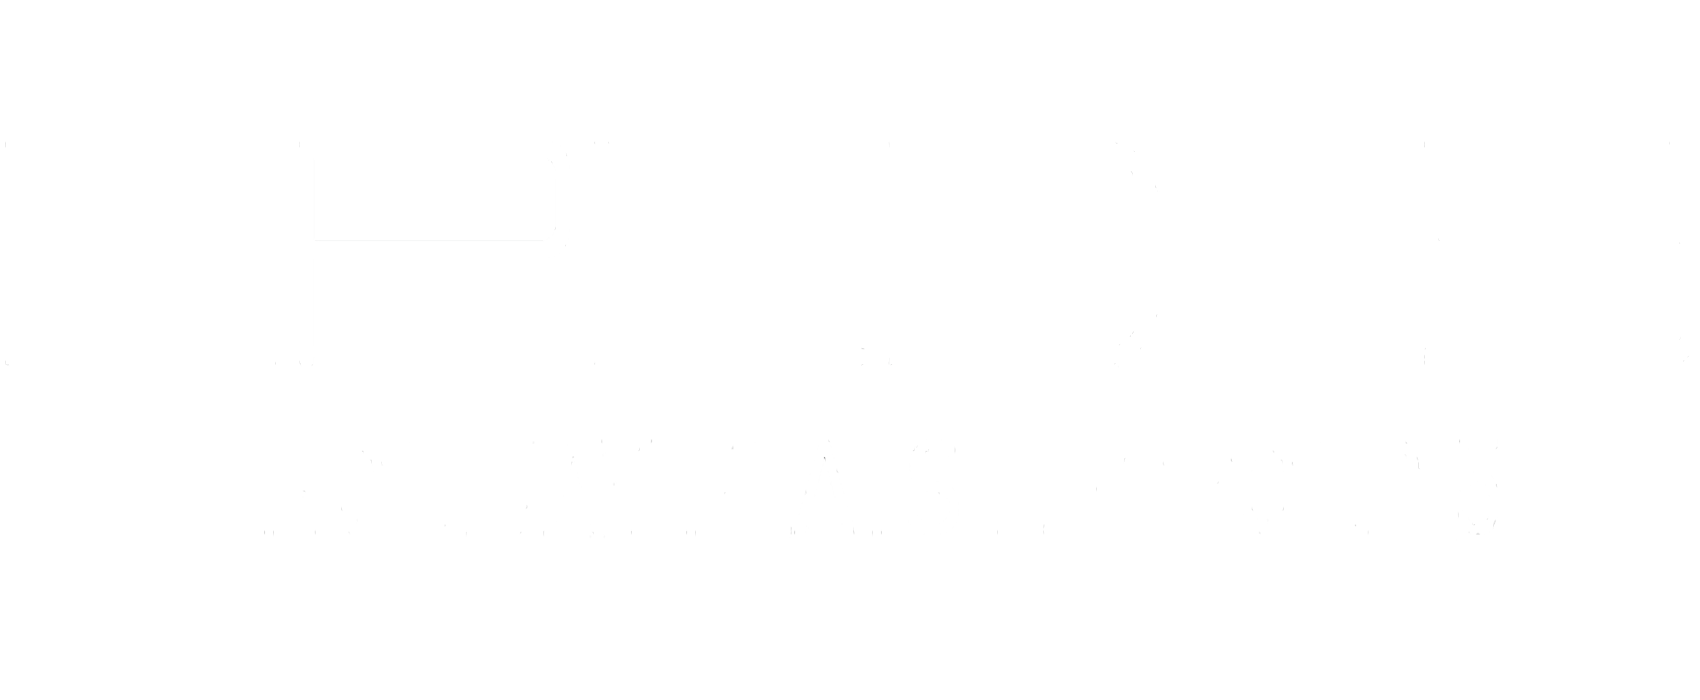 Leopold 5 - Holiday Flats